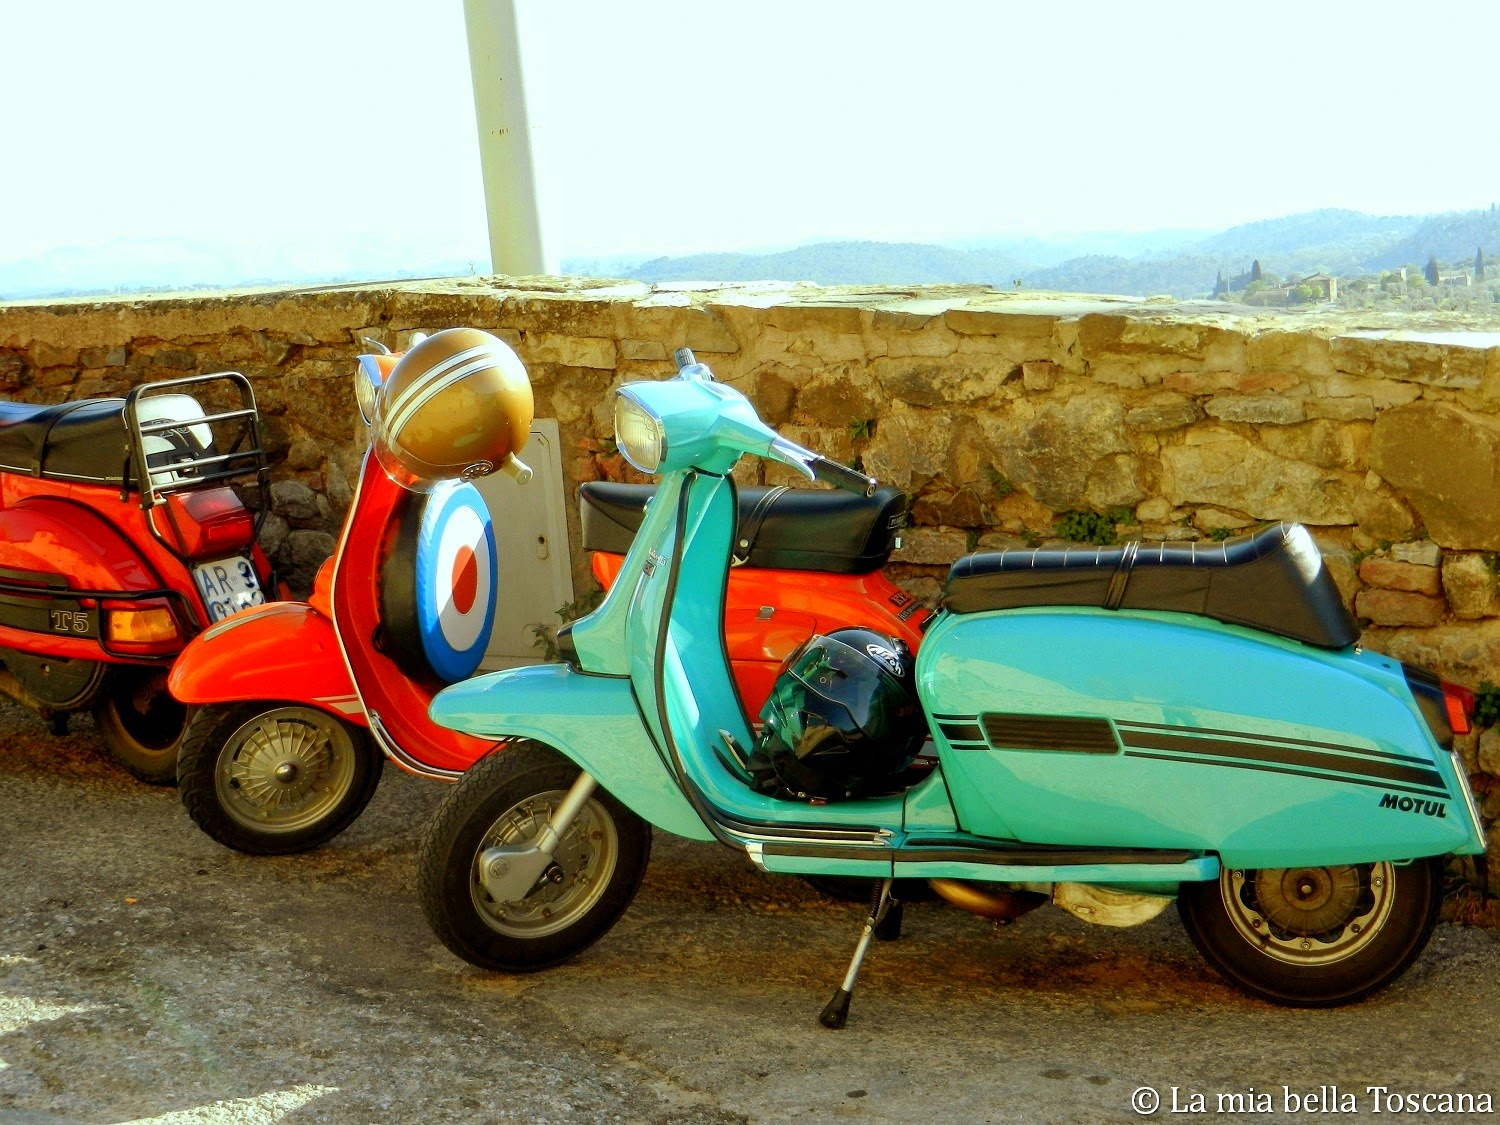 Trip in the heart of Tuscany